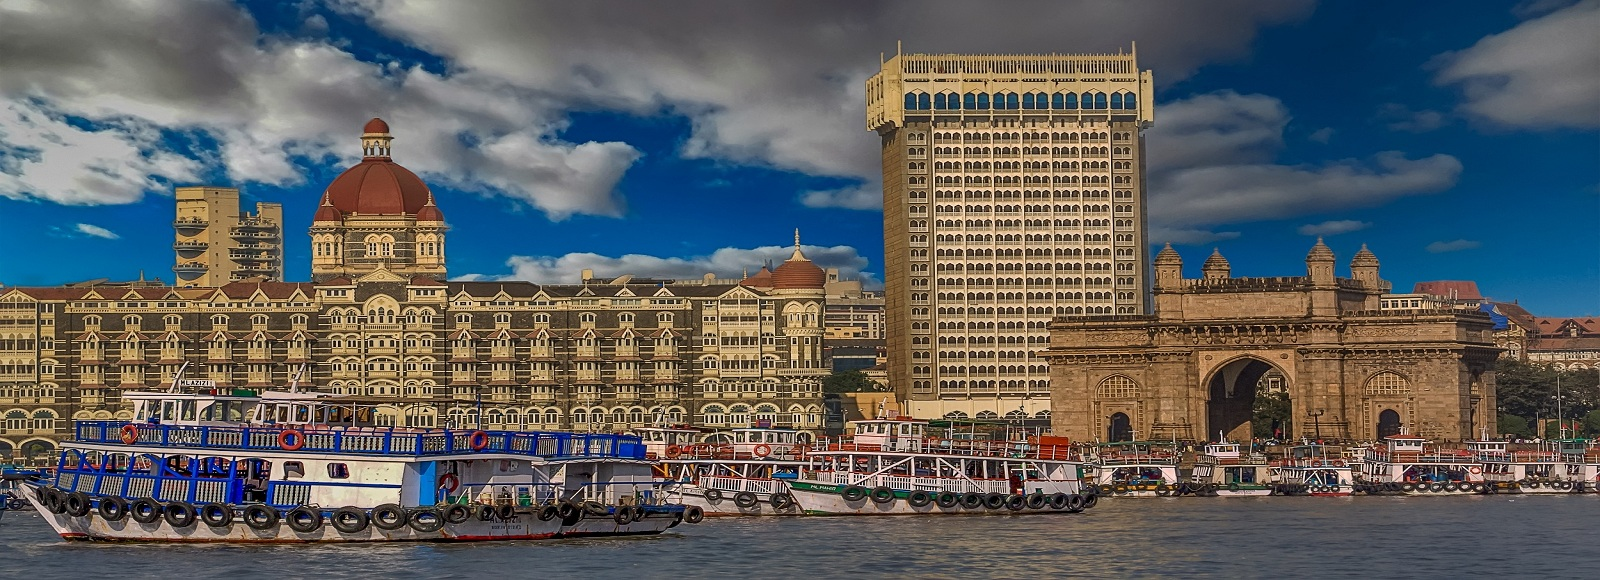 Cheap Flight Fares to Mumbai. Flight Tickets Discounts to Mumbai